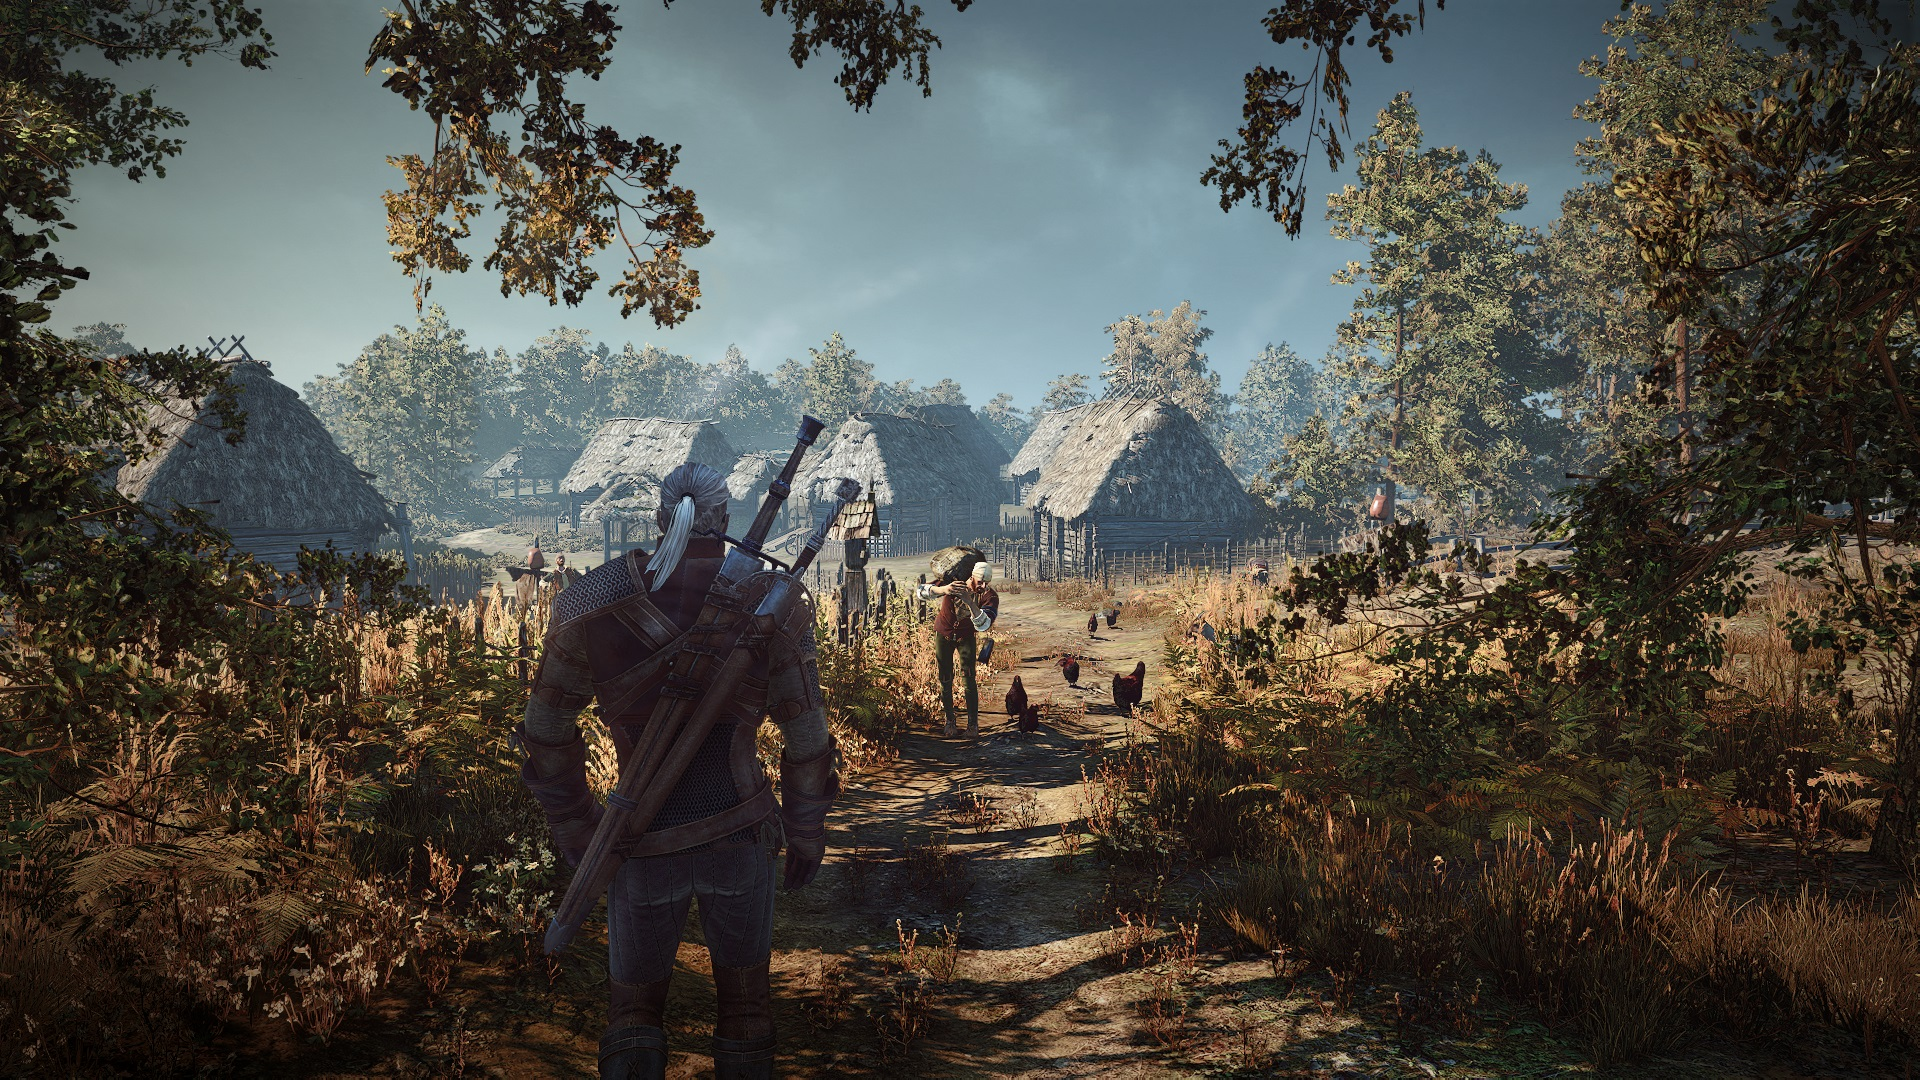 The witcher 3 release date in Perth